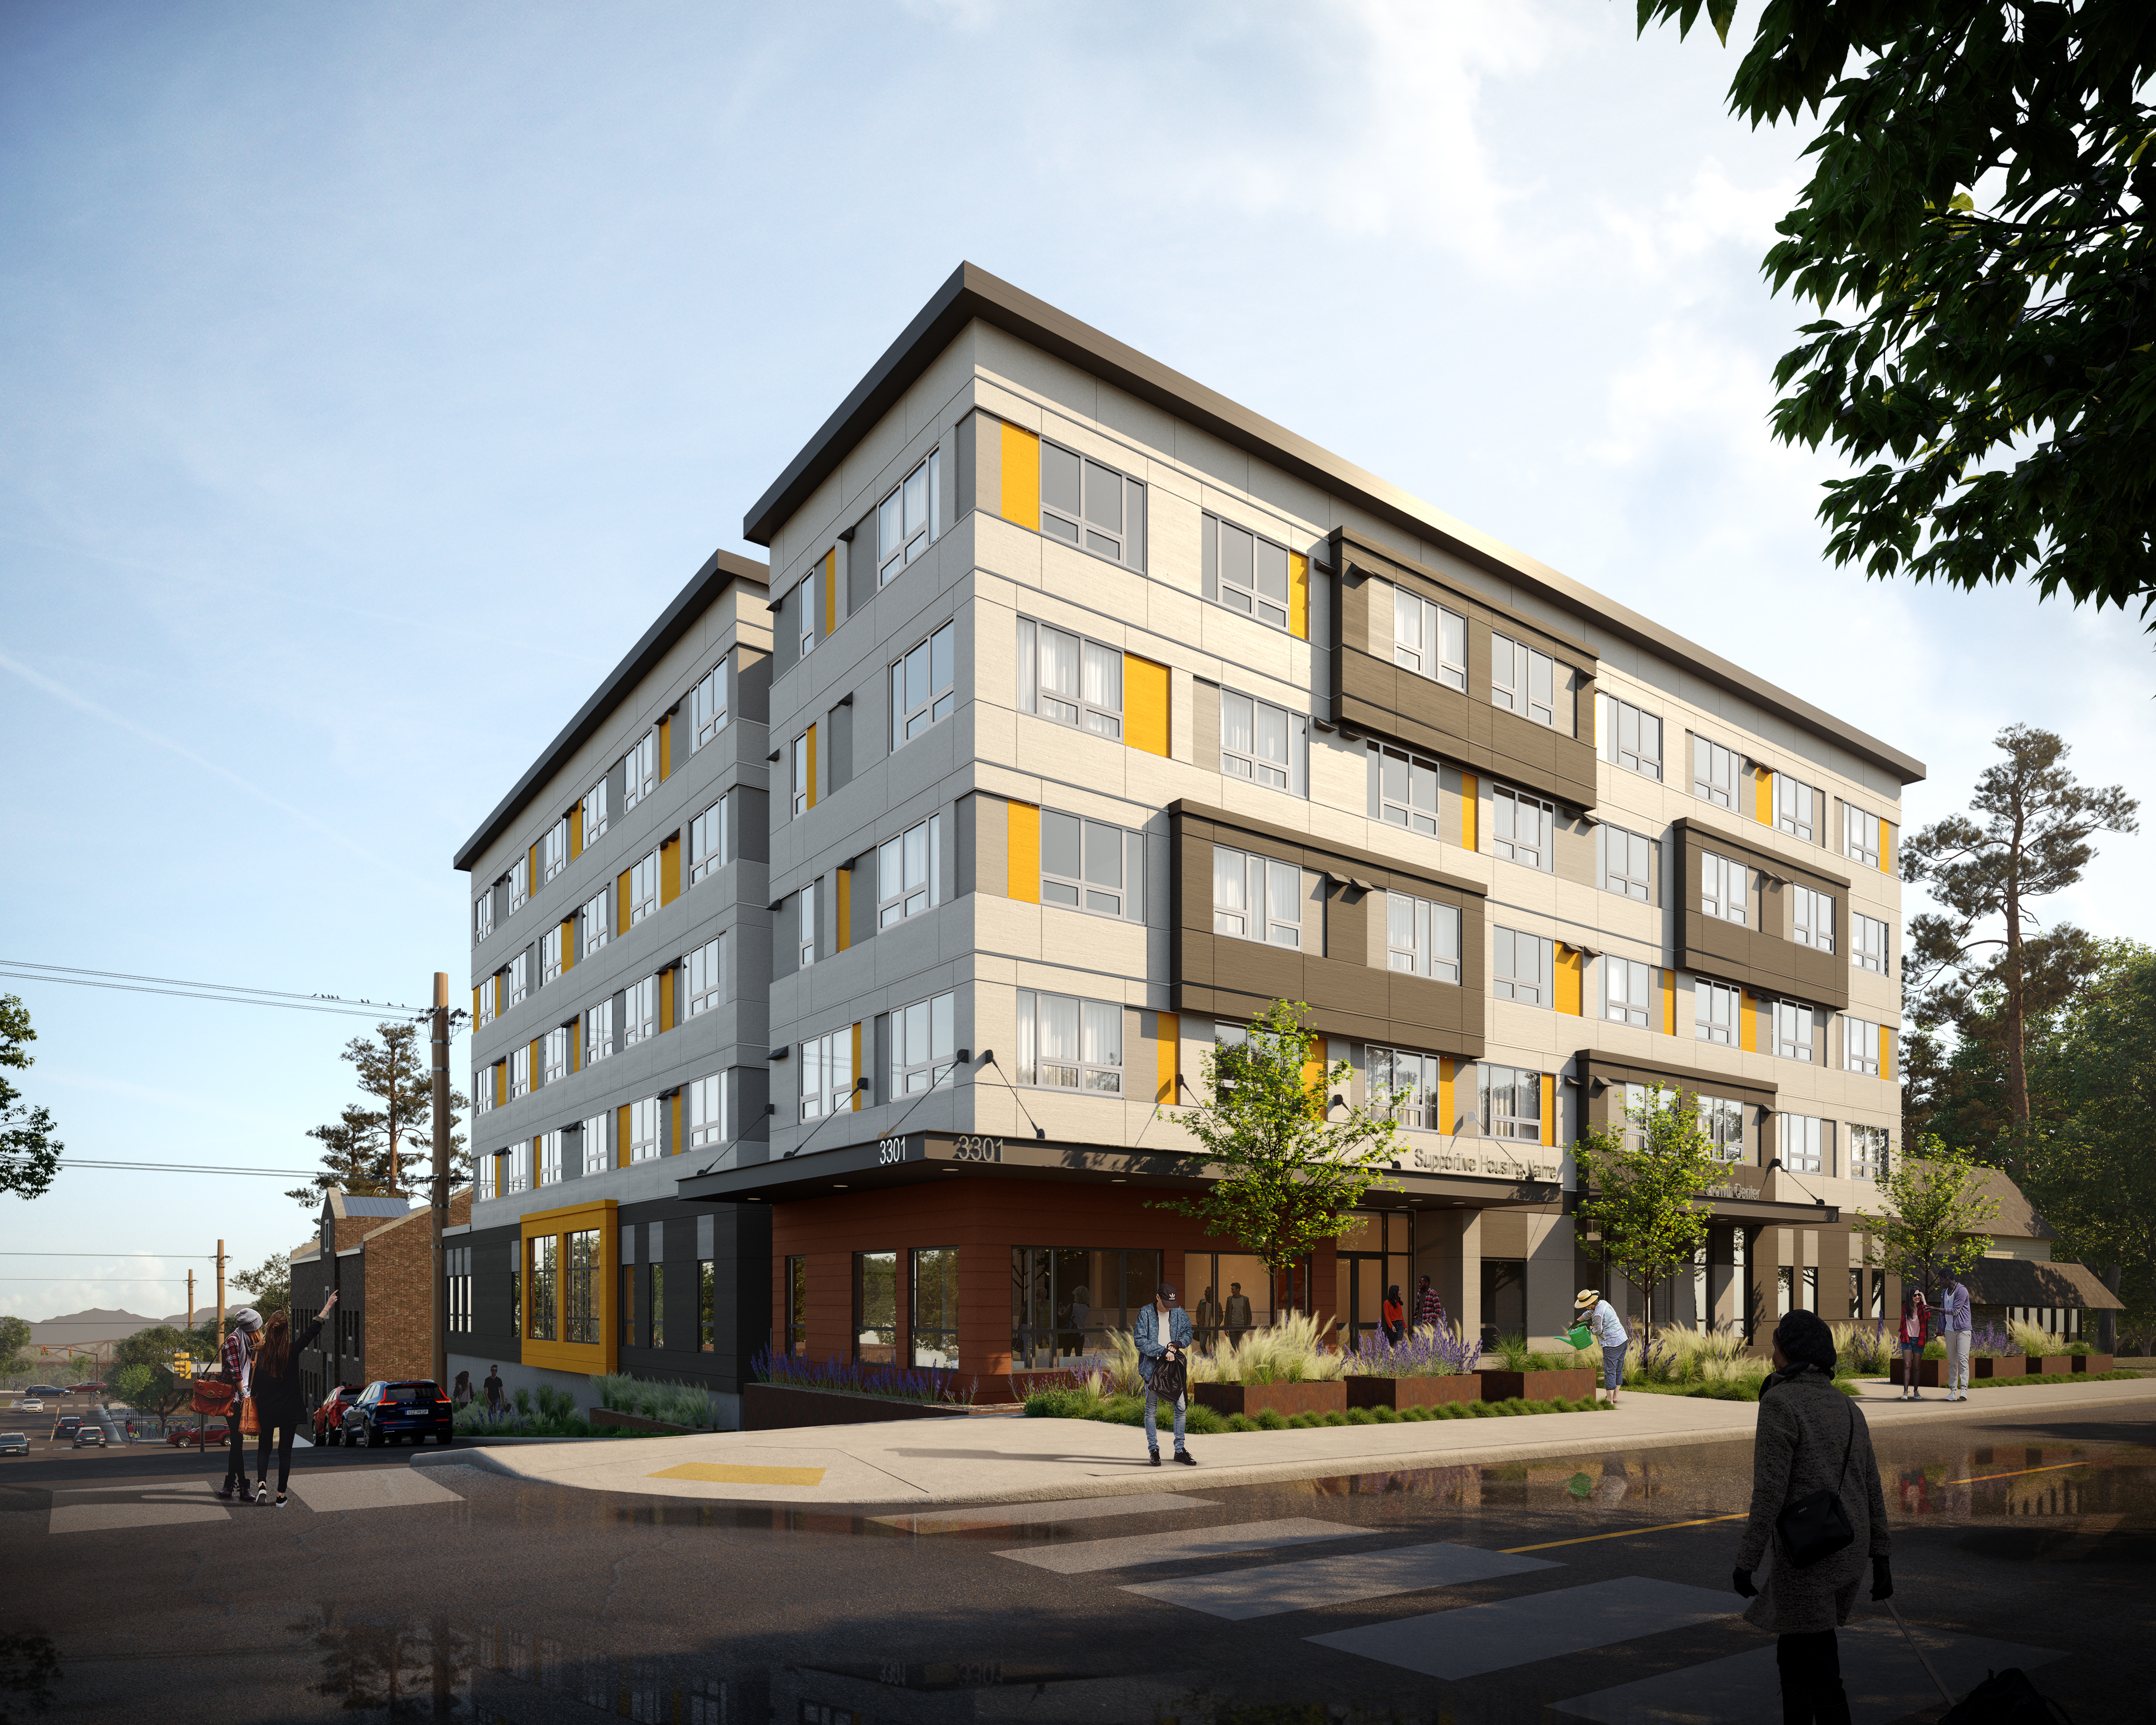 Rendering showing new apartment complex